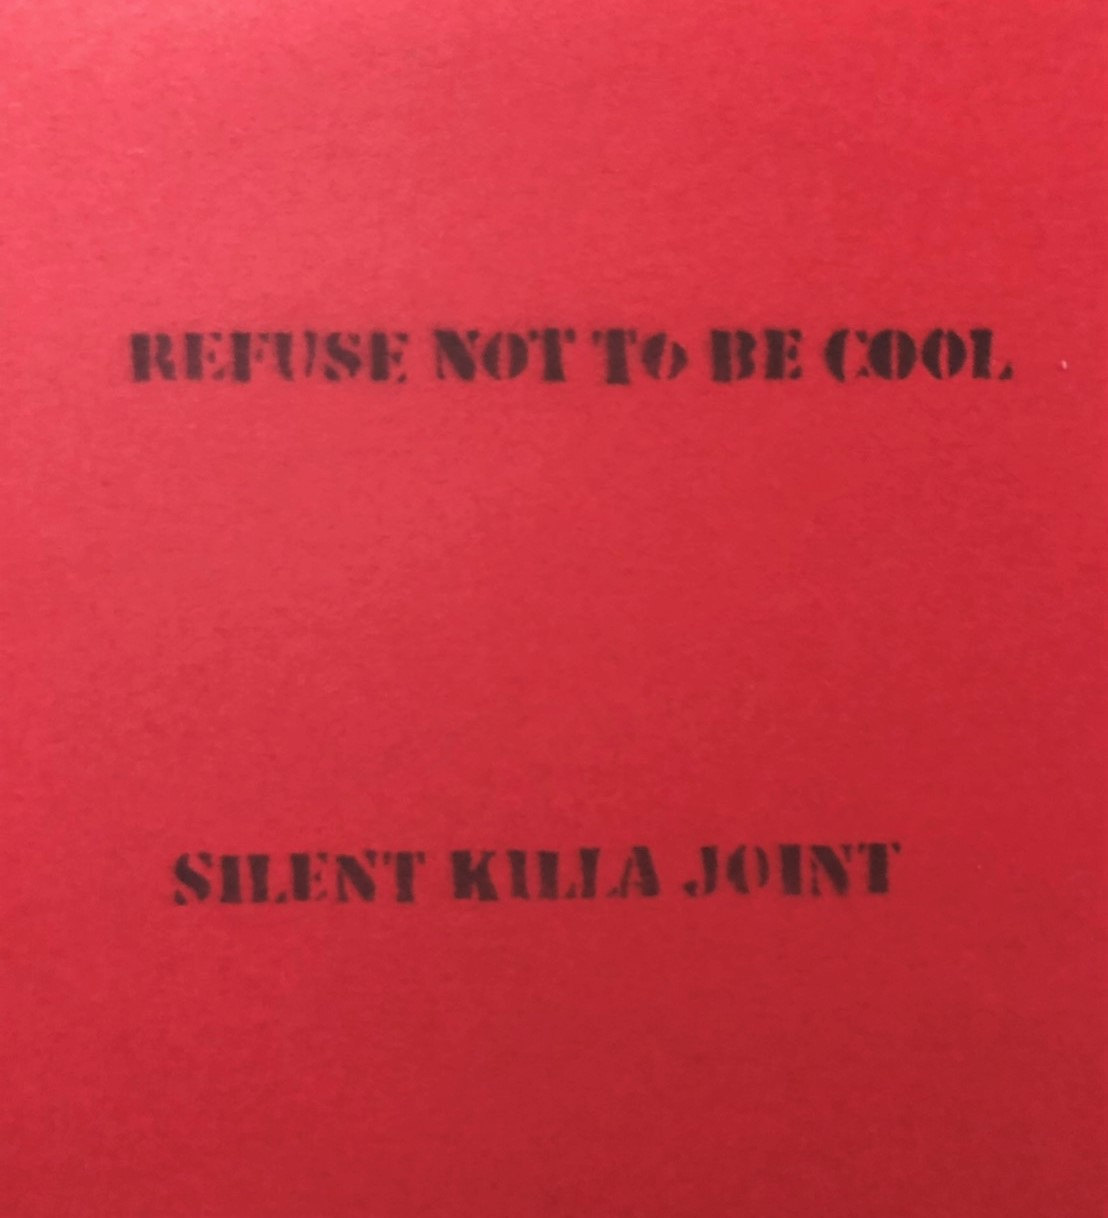 Silent Killa Joint / Refuse not to Be cool [CD]